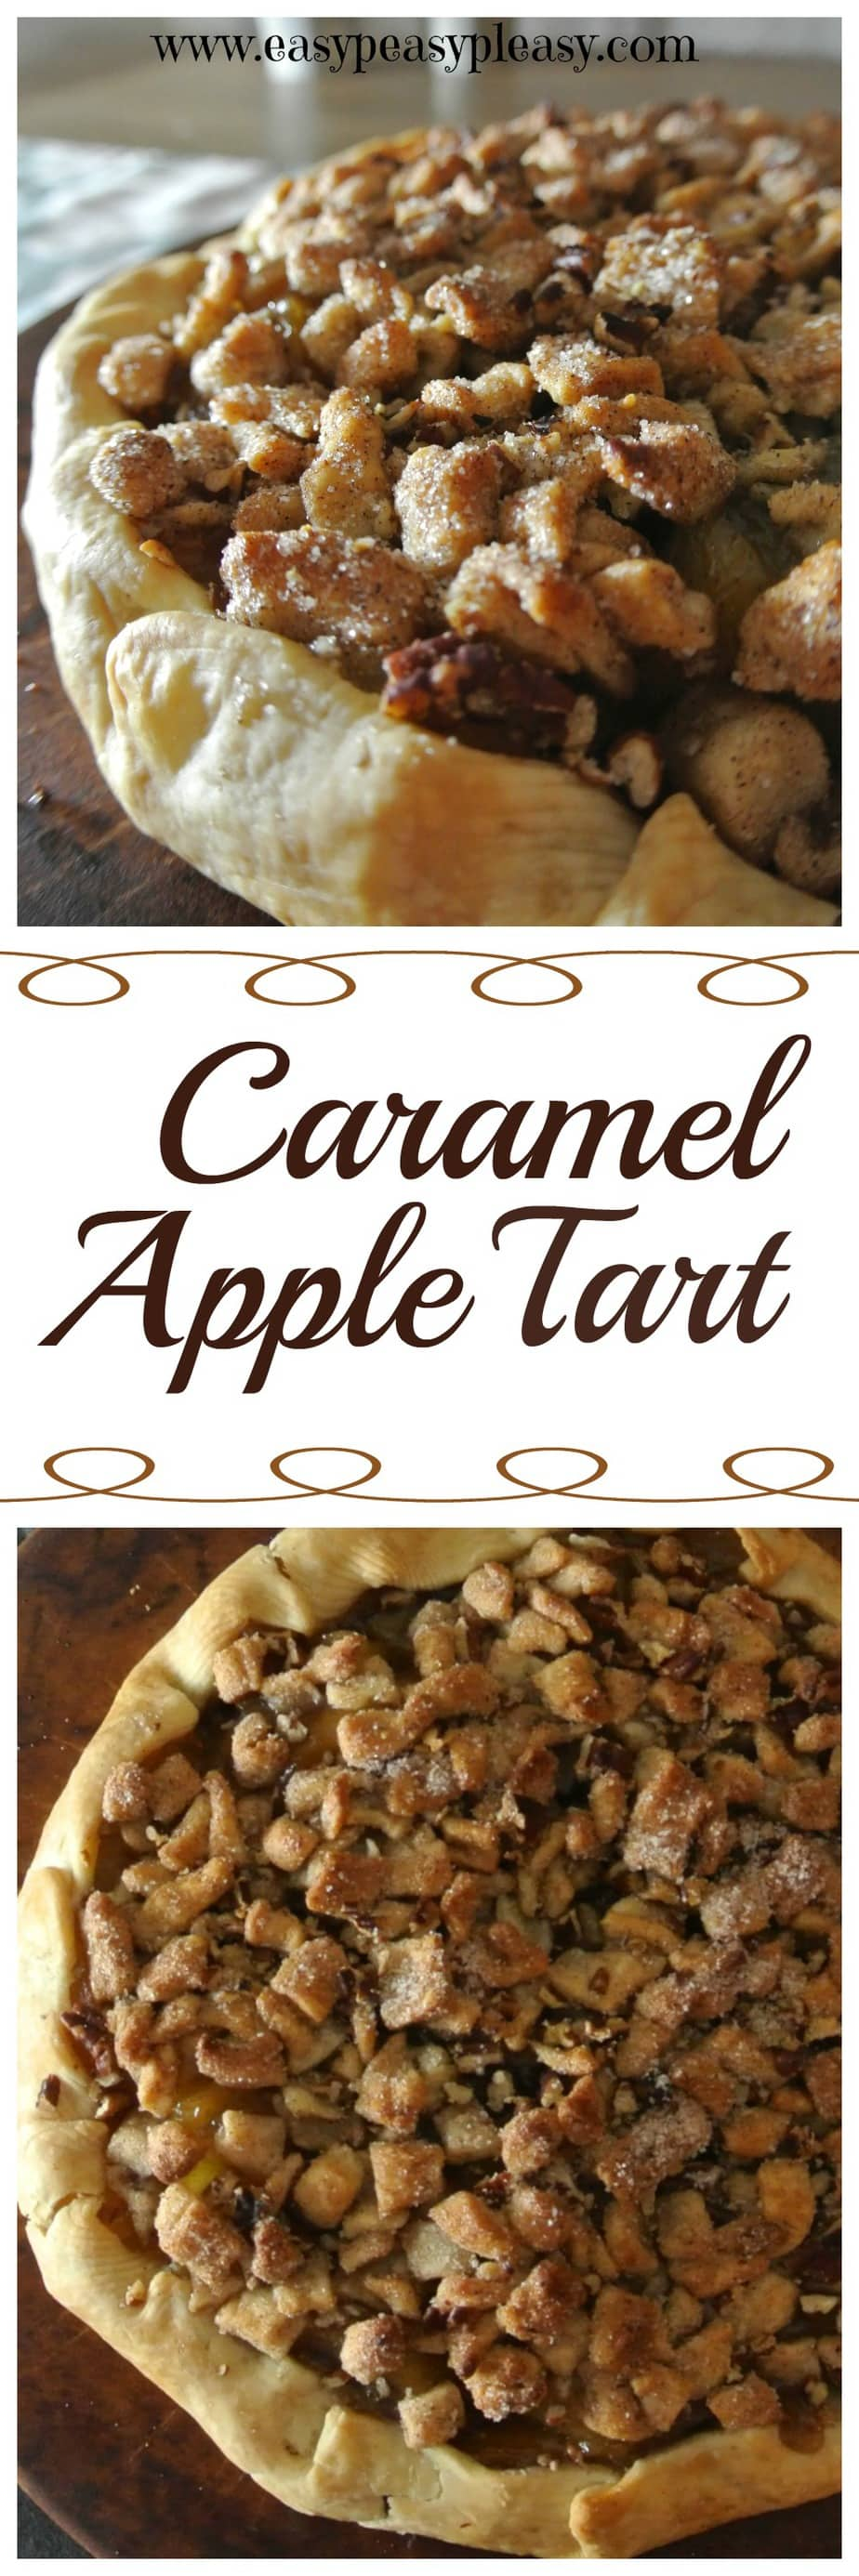 Easy 5 Ingredient Caramel Apple Streusel Tart!